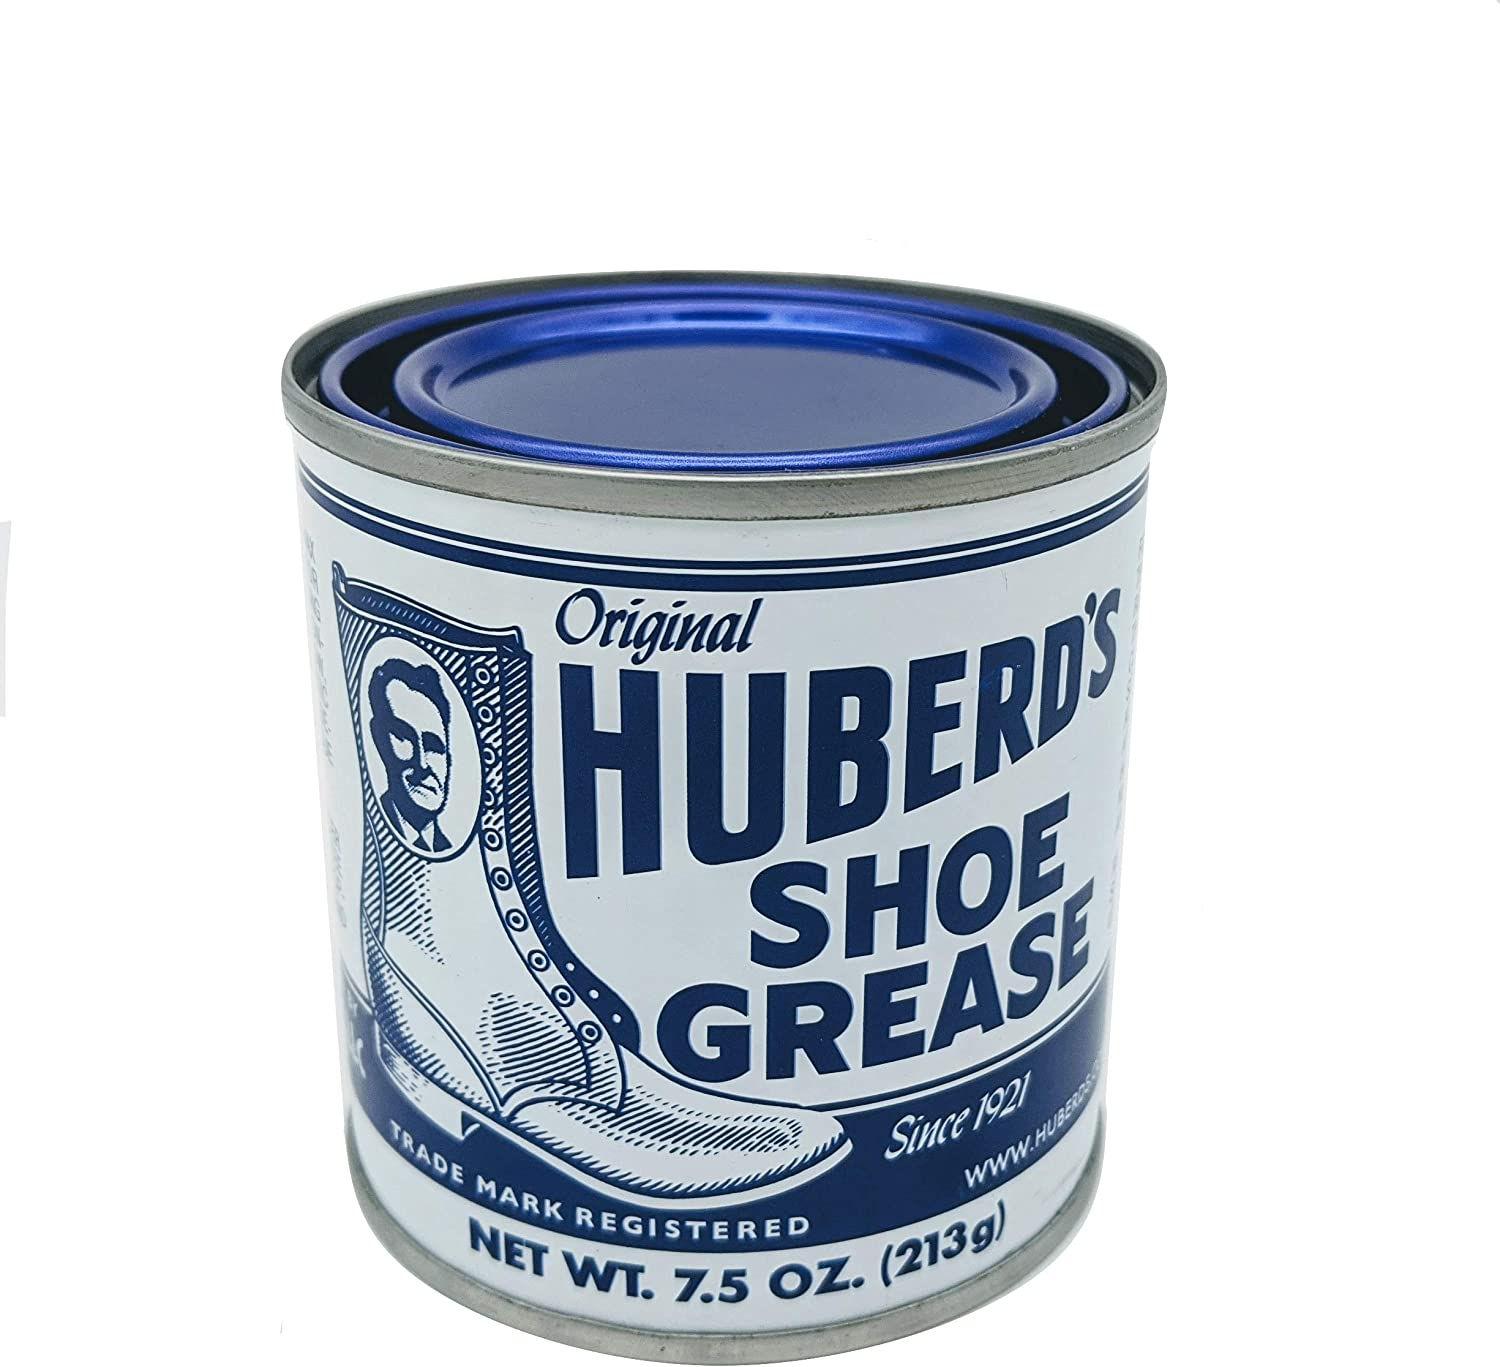 Huberd's Shoe Grease, 7.5oz: Waterproofs, Softens, Conditions Leather. Protects Shoes, Boots, Sporting Goods, Saddle & Tack. Restores Dry, Cracked, Scratched Leather. Small Batched since 1921!: Home & Kitchen